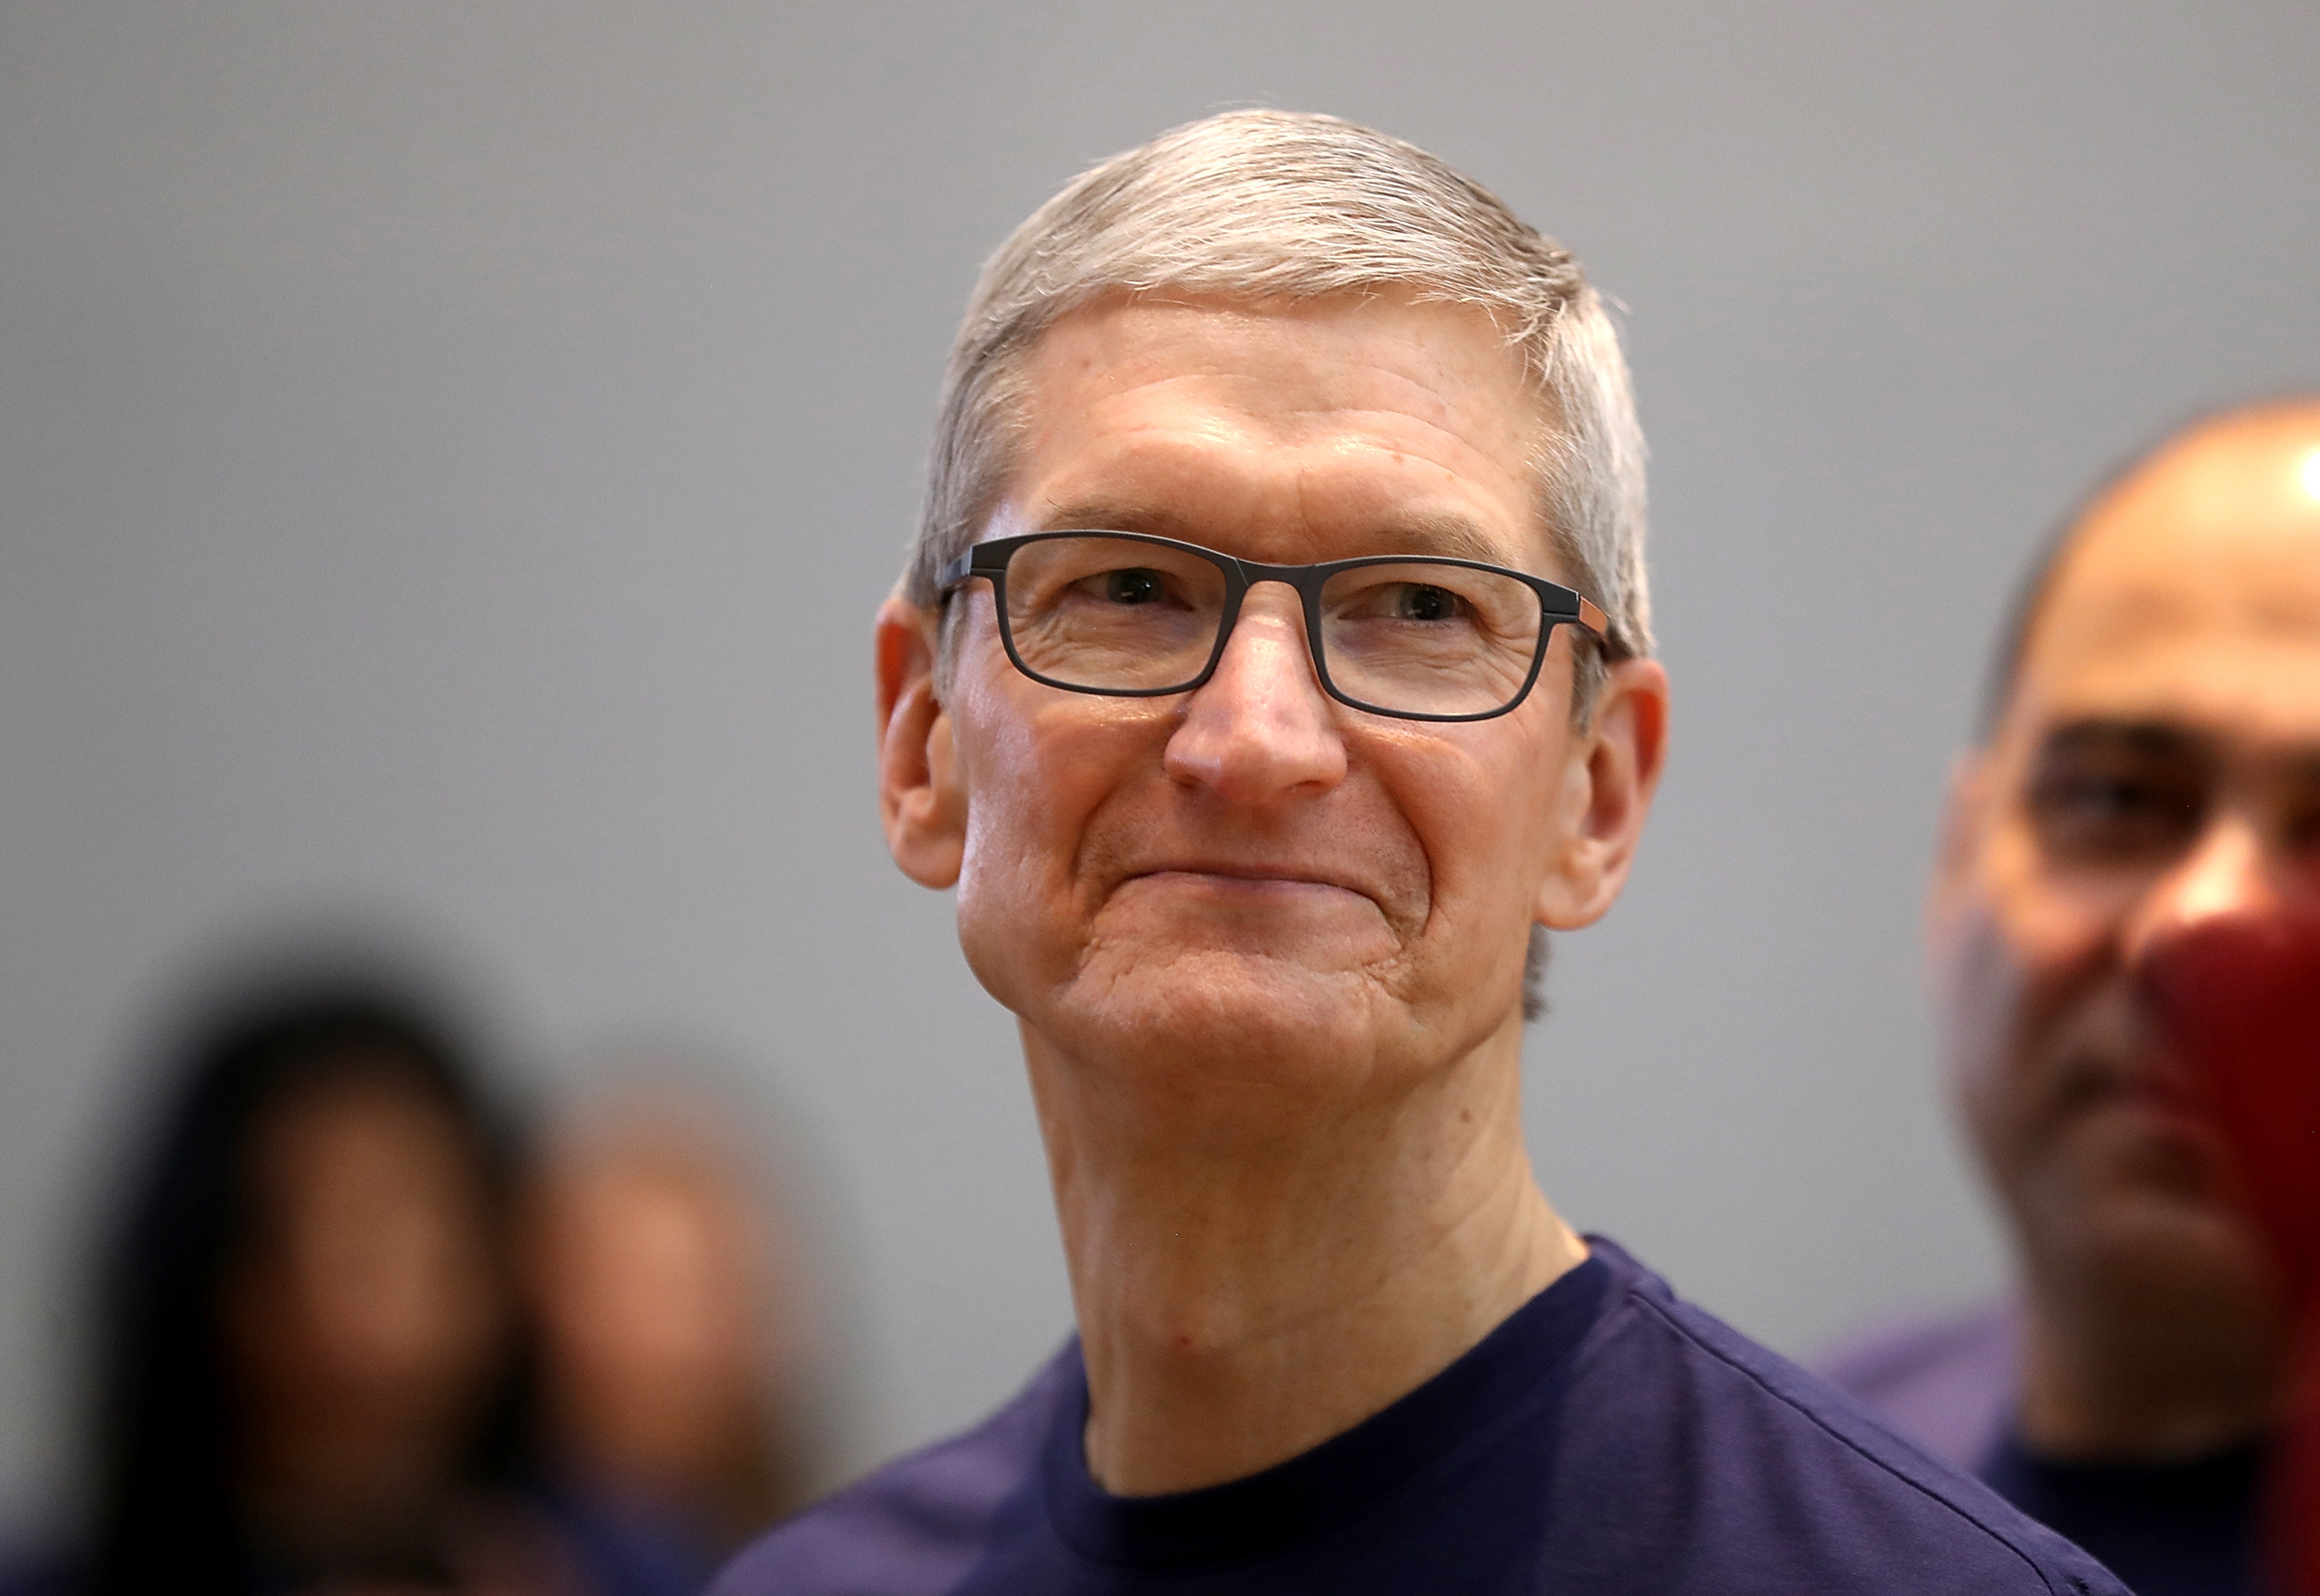 Apple's big cash play: A boon for the economy or just good PR?